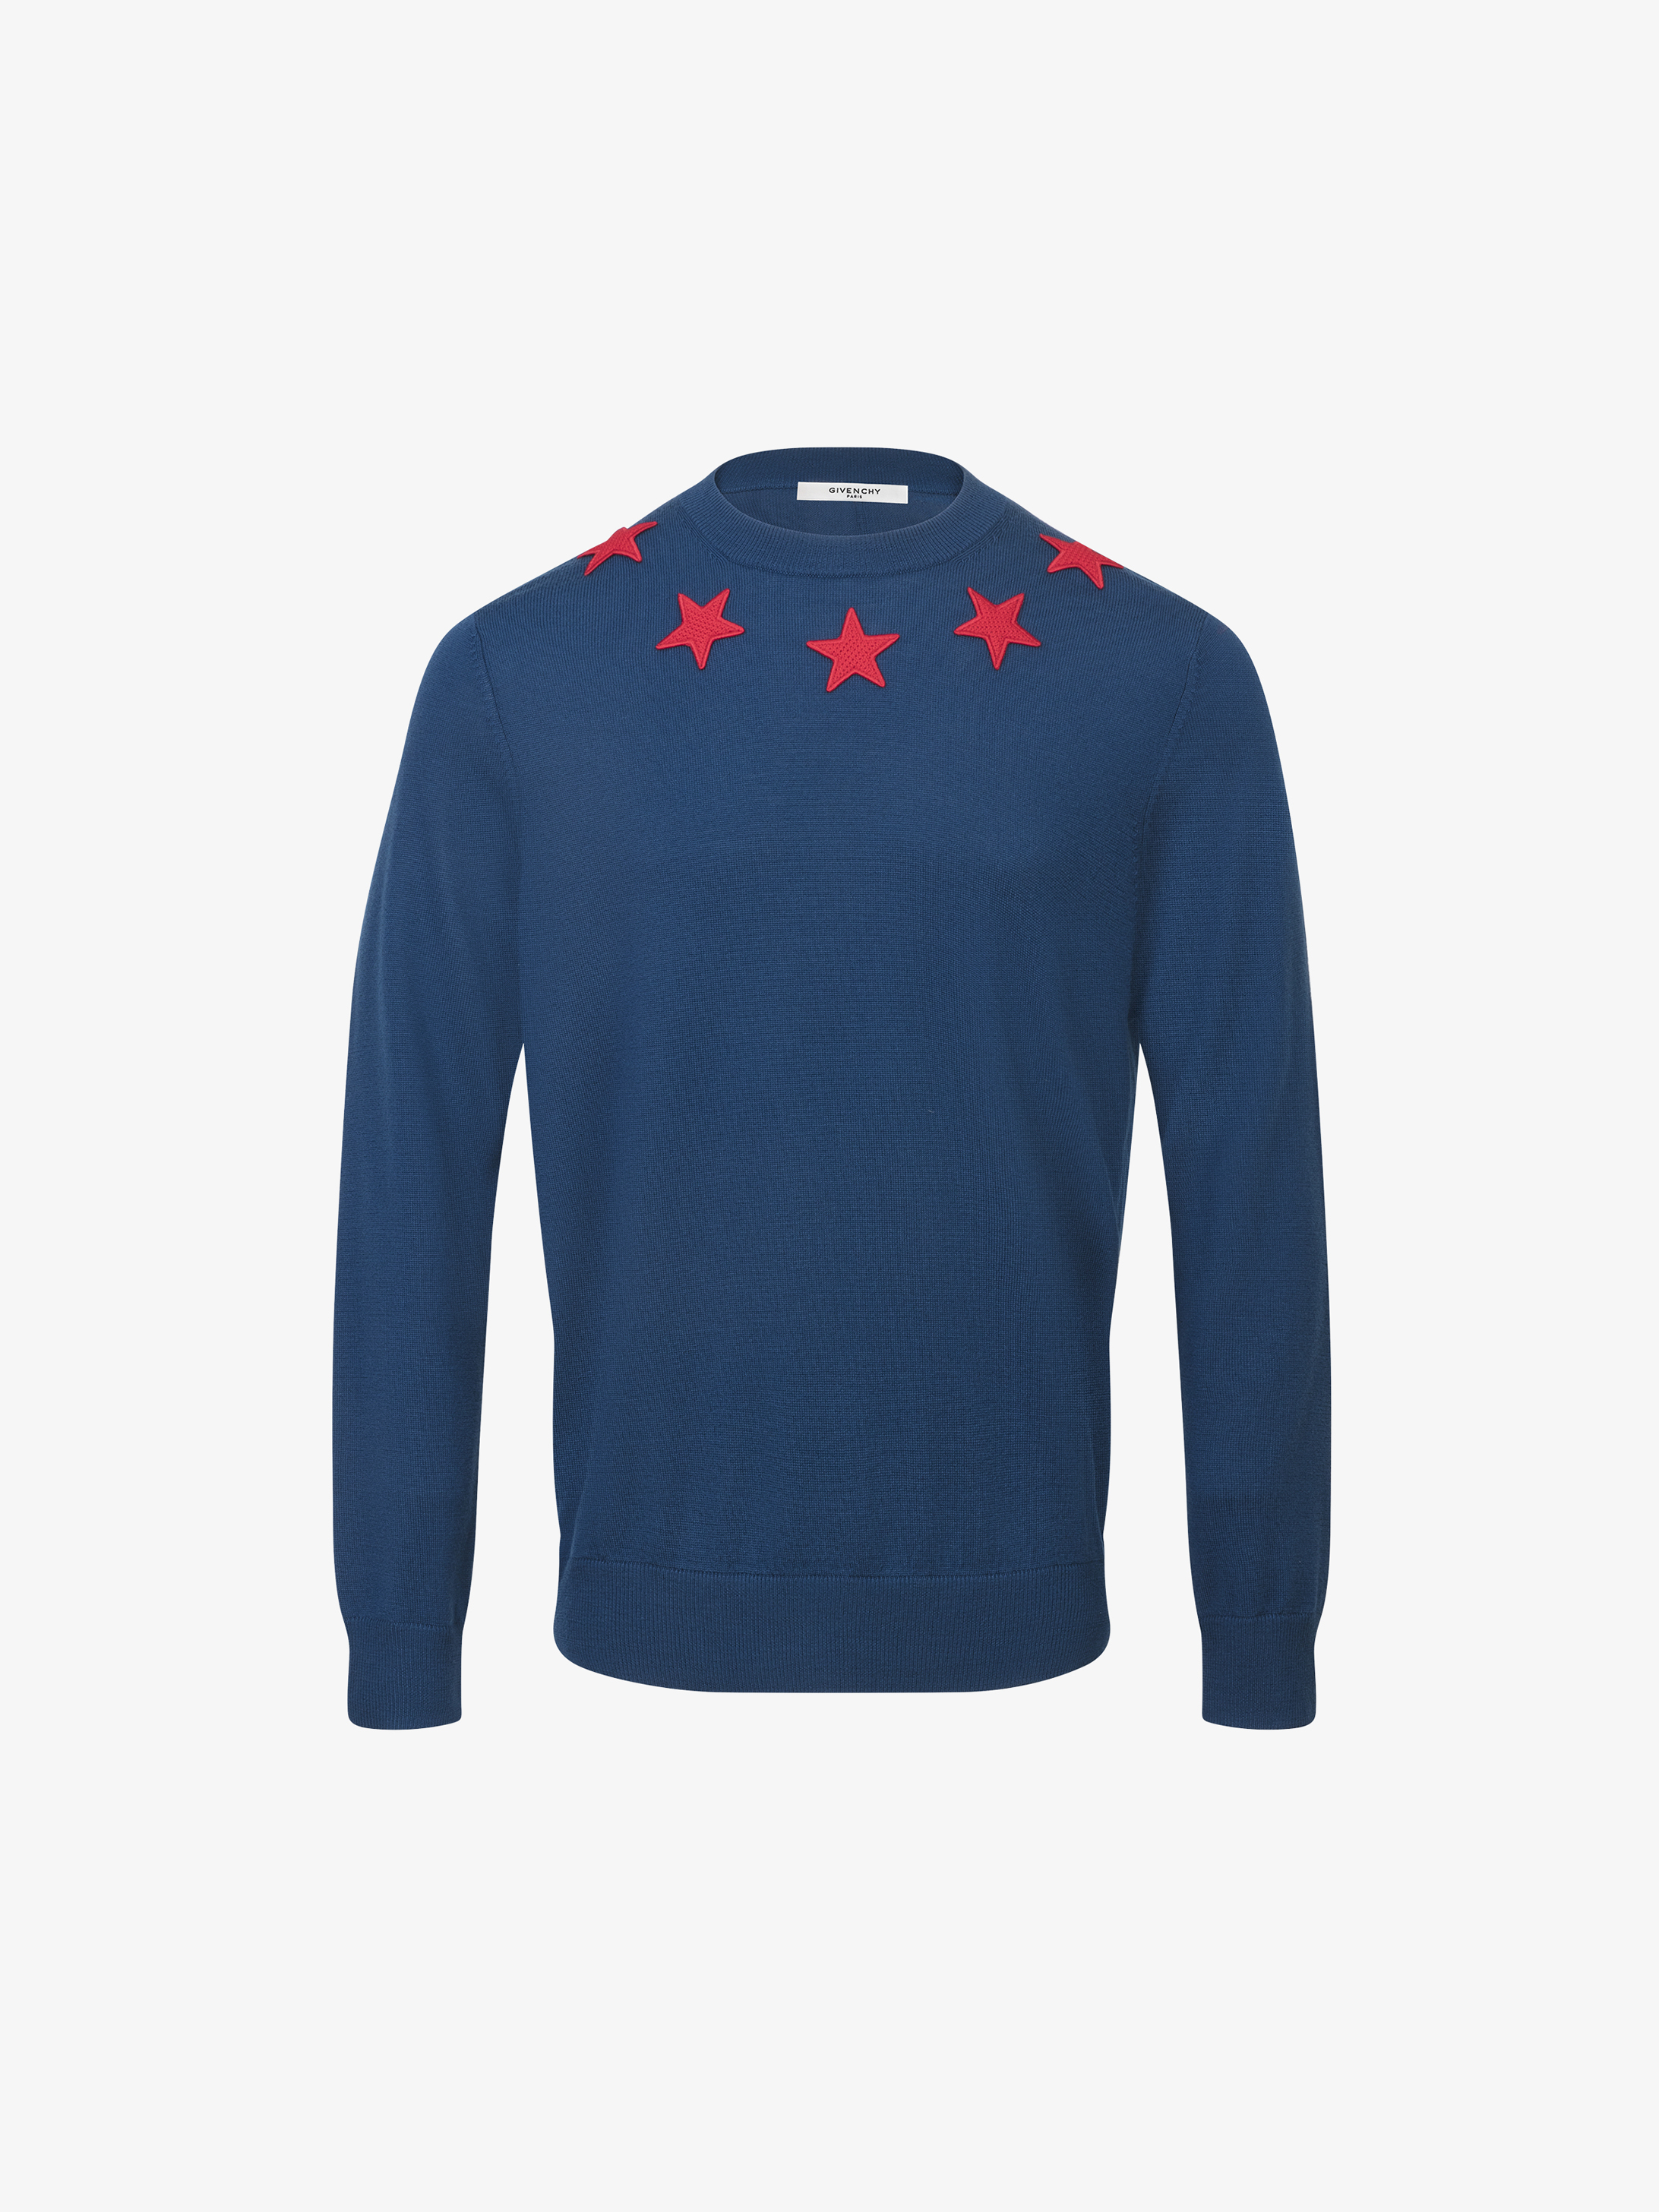 Givenchy Contrasting stars jumper  ff1f9c48a